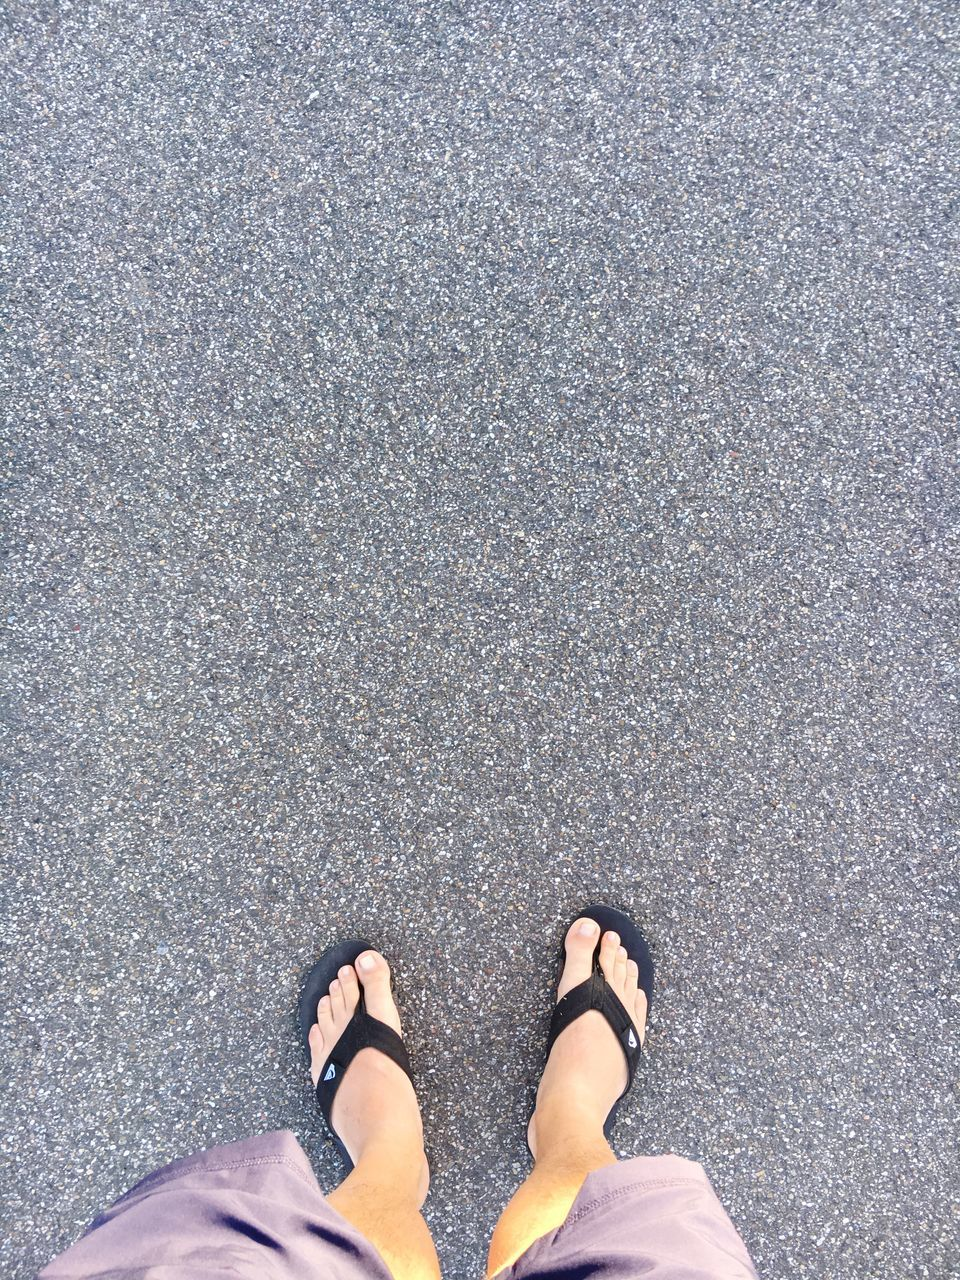 low section, human leg, standing, shoe, personal perspective, high angle view, directly above, outdoors, human body part, real people, one person, day, asphalt, lifestyles, road, men, nature, one man only, adult, people